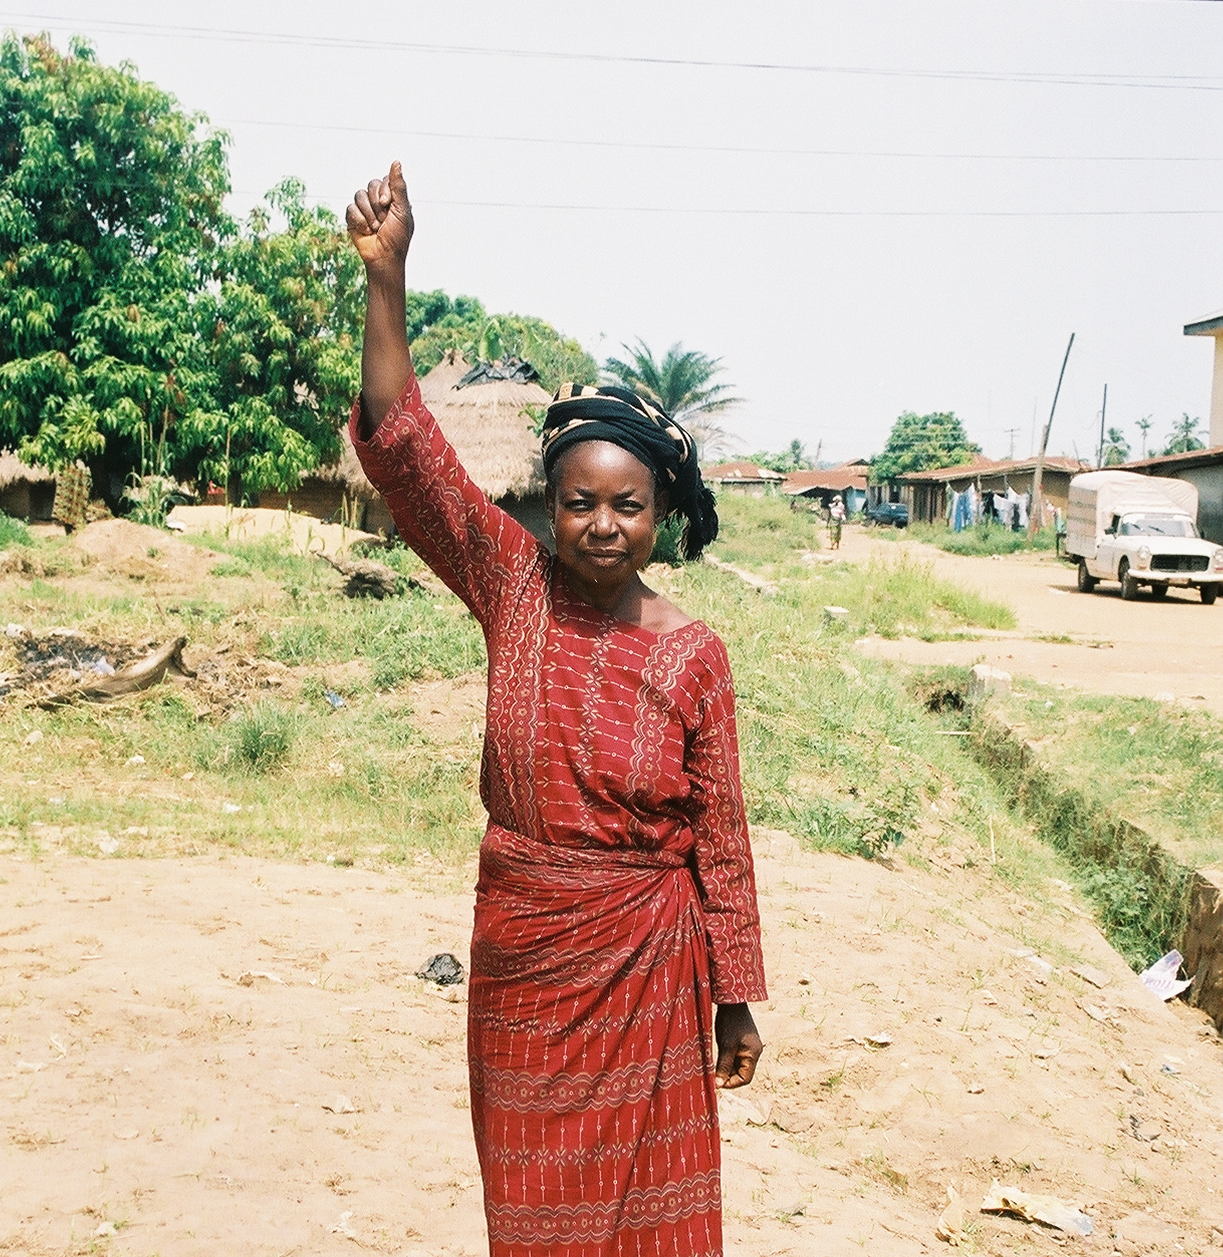 This lady in Nigeria, West Africa lived in a village outside of town.  We went to her village with the message of Jesus Christ.  She believed and was healed of  a paralyzed arm!.jpg